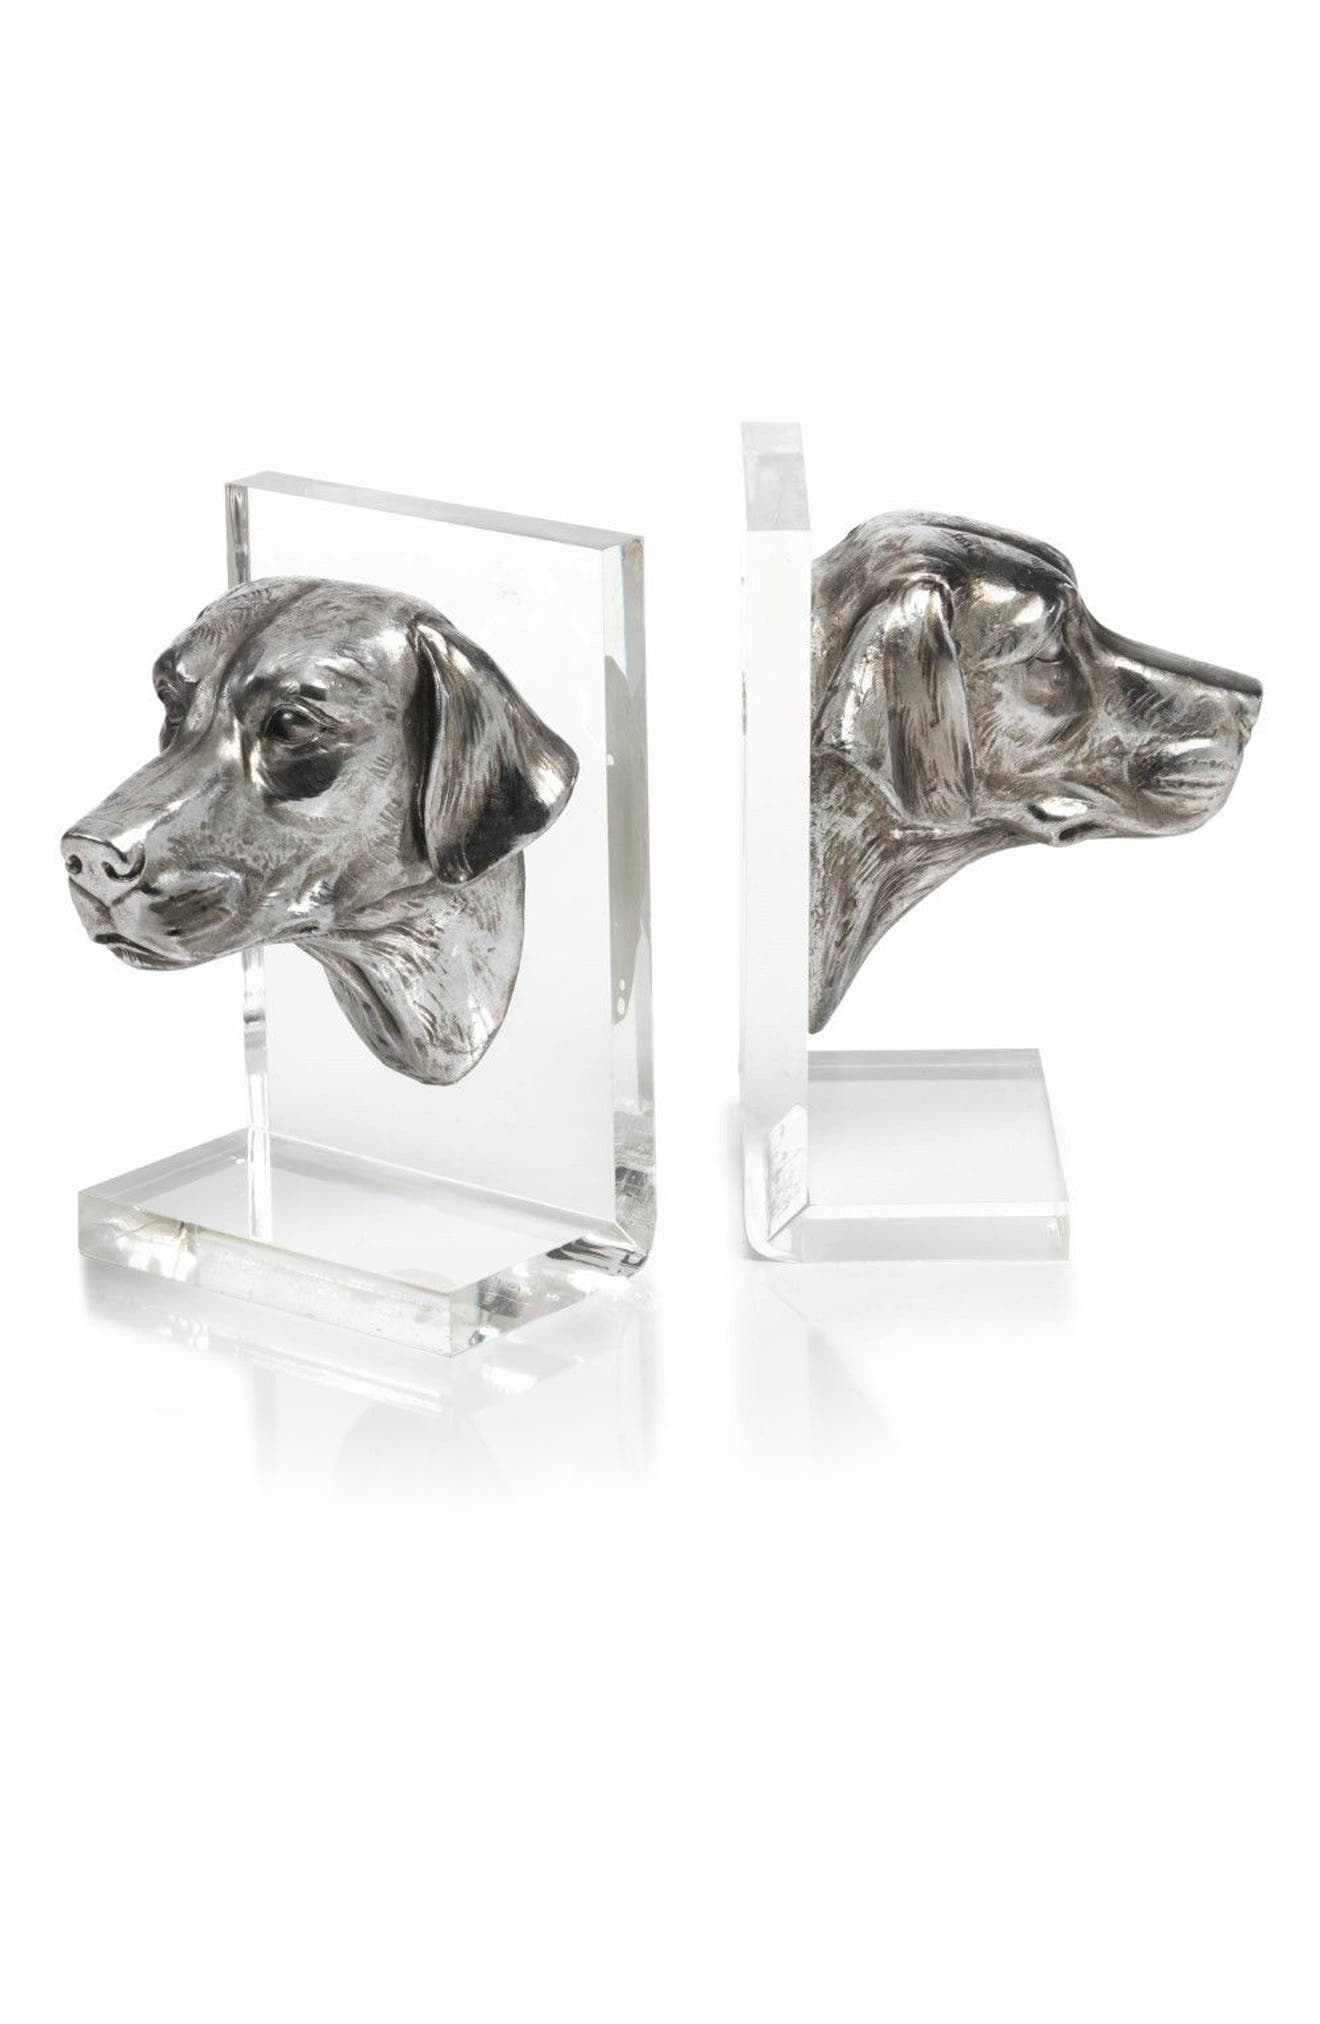 Alternate Image 1 Selected - Zodax Cadence Set of 2 Dog Bookends